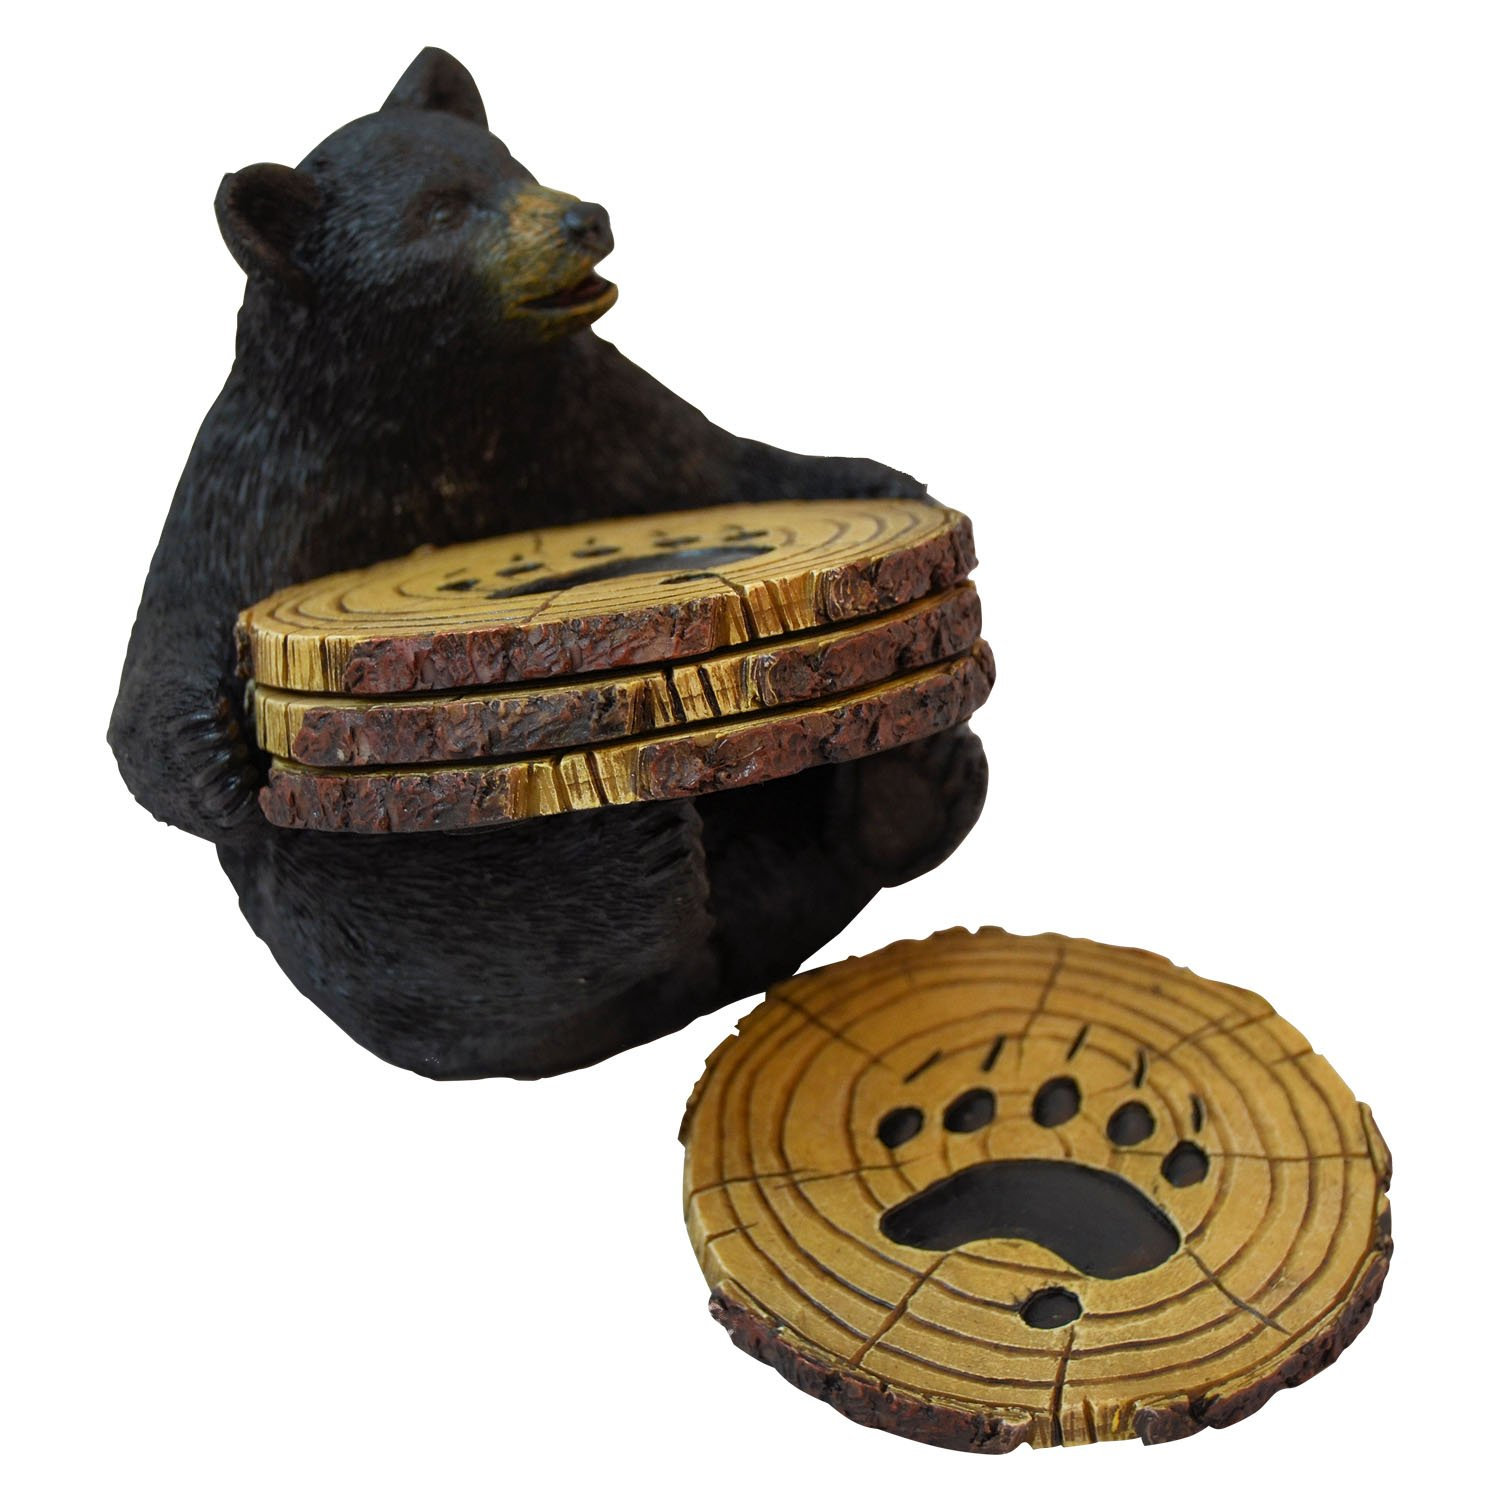 Black Bear Drink Coaster Set of 4 with Rubber Pad Base - Cool Rustic Home Table Beer and Wine Beverage Coaster With Holder